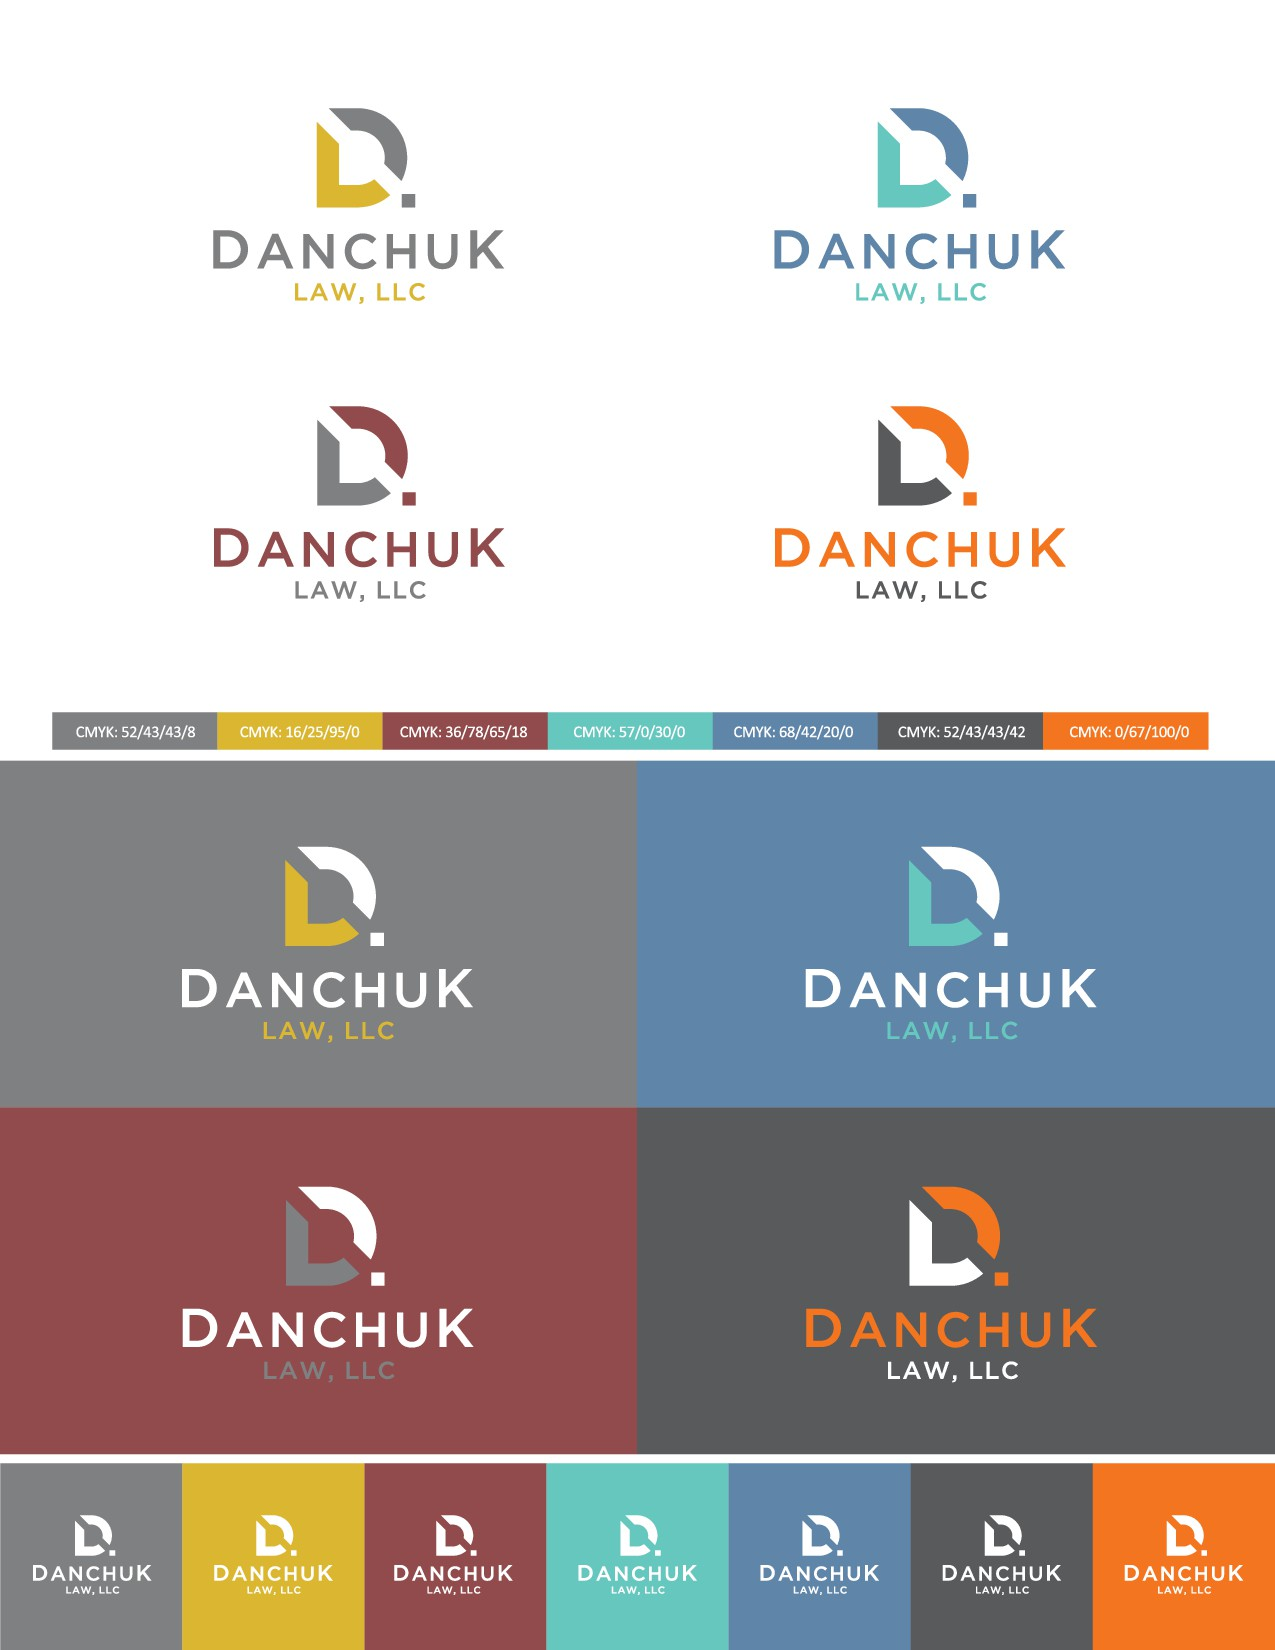 """Challenge: Law firm needs logo that doesn't look """"law firm-y"""""""